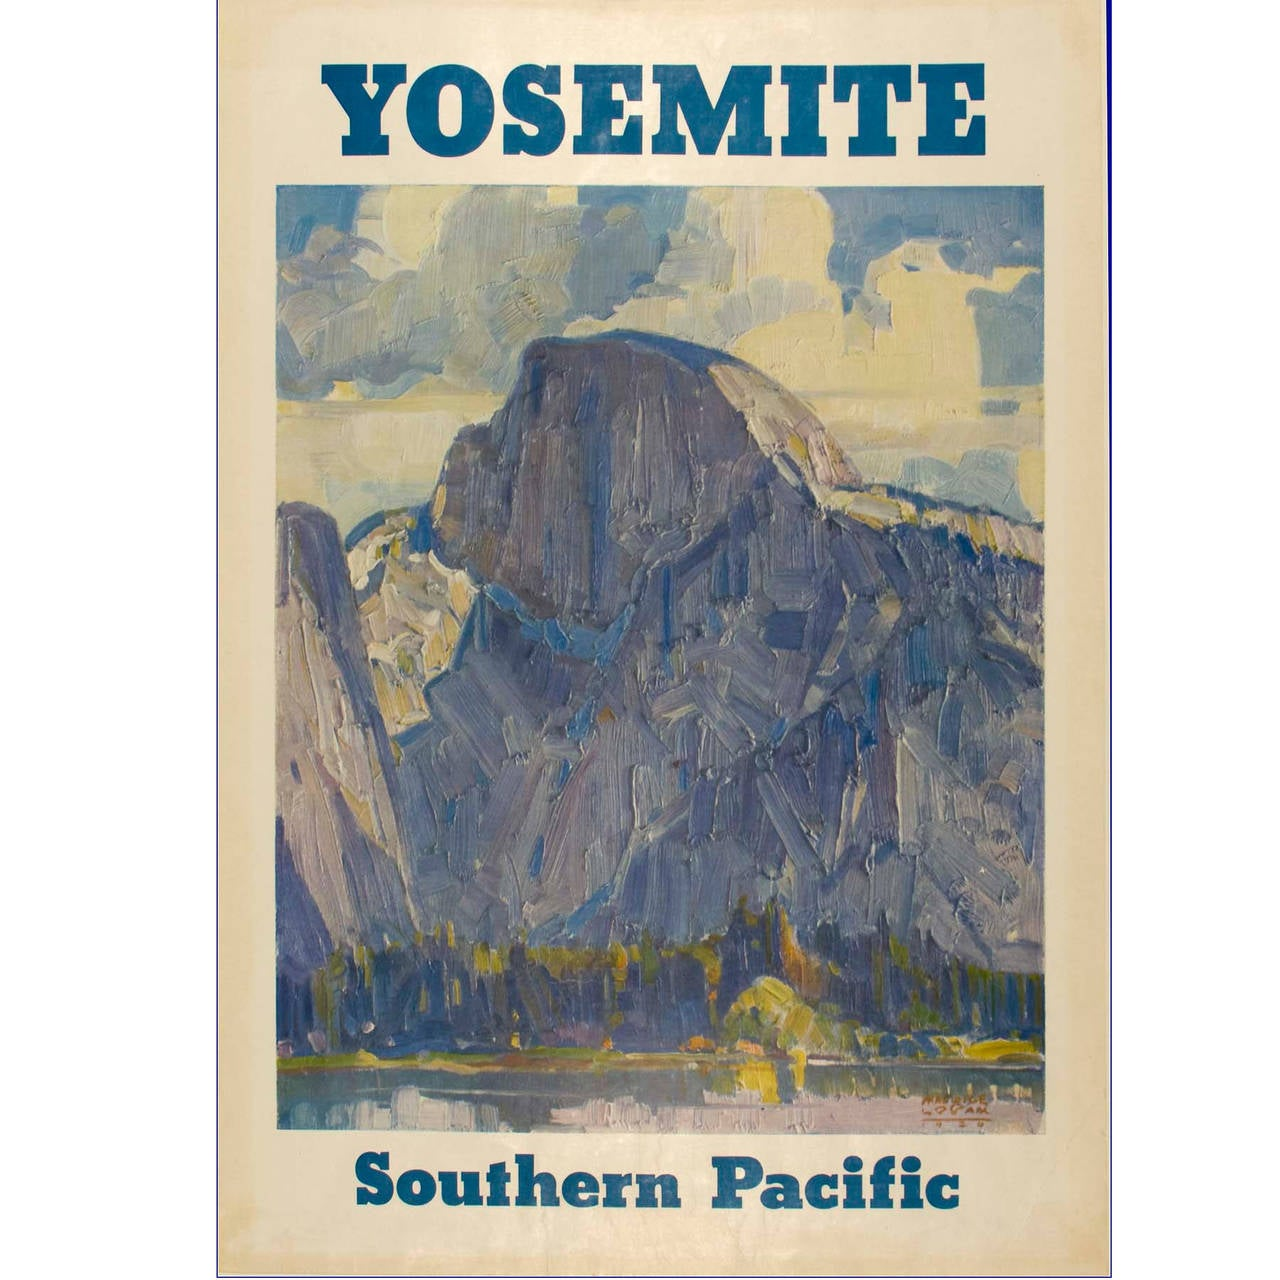 Yosemite Poster Winter Vintage: Vintage Southern Pacific Poster Featuring Yosemite For